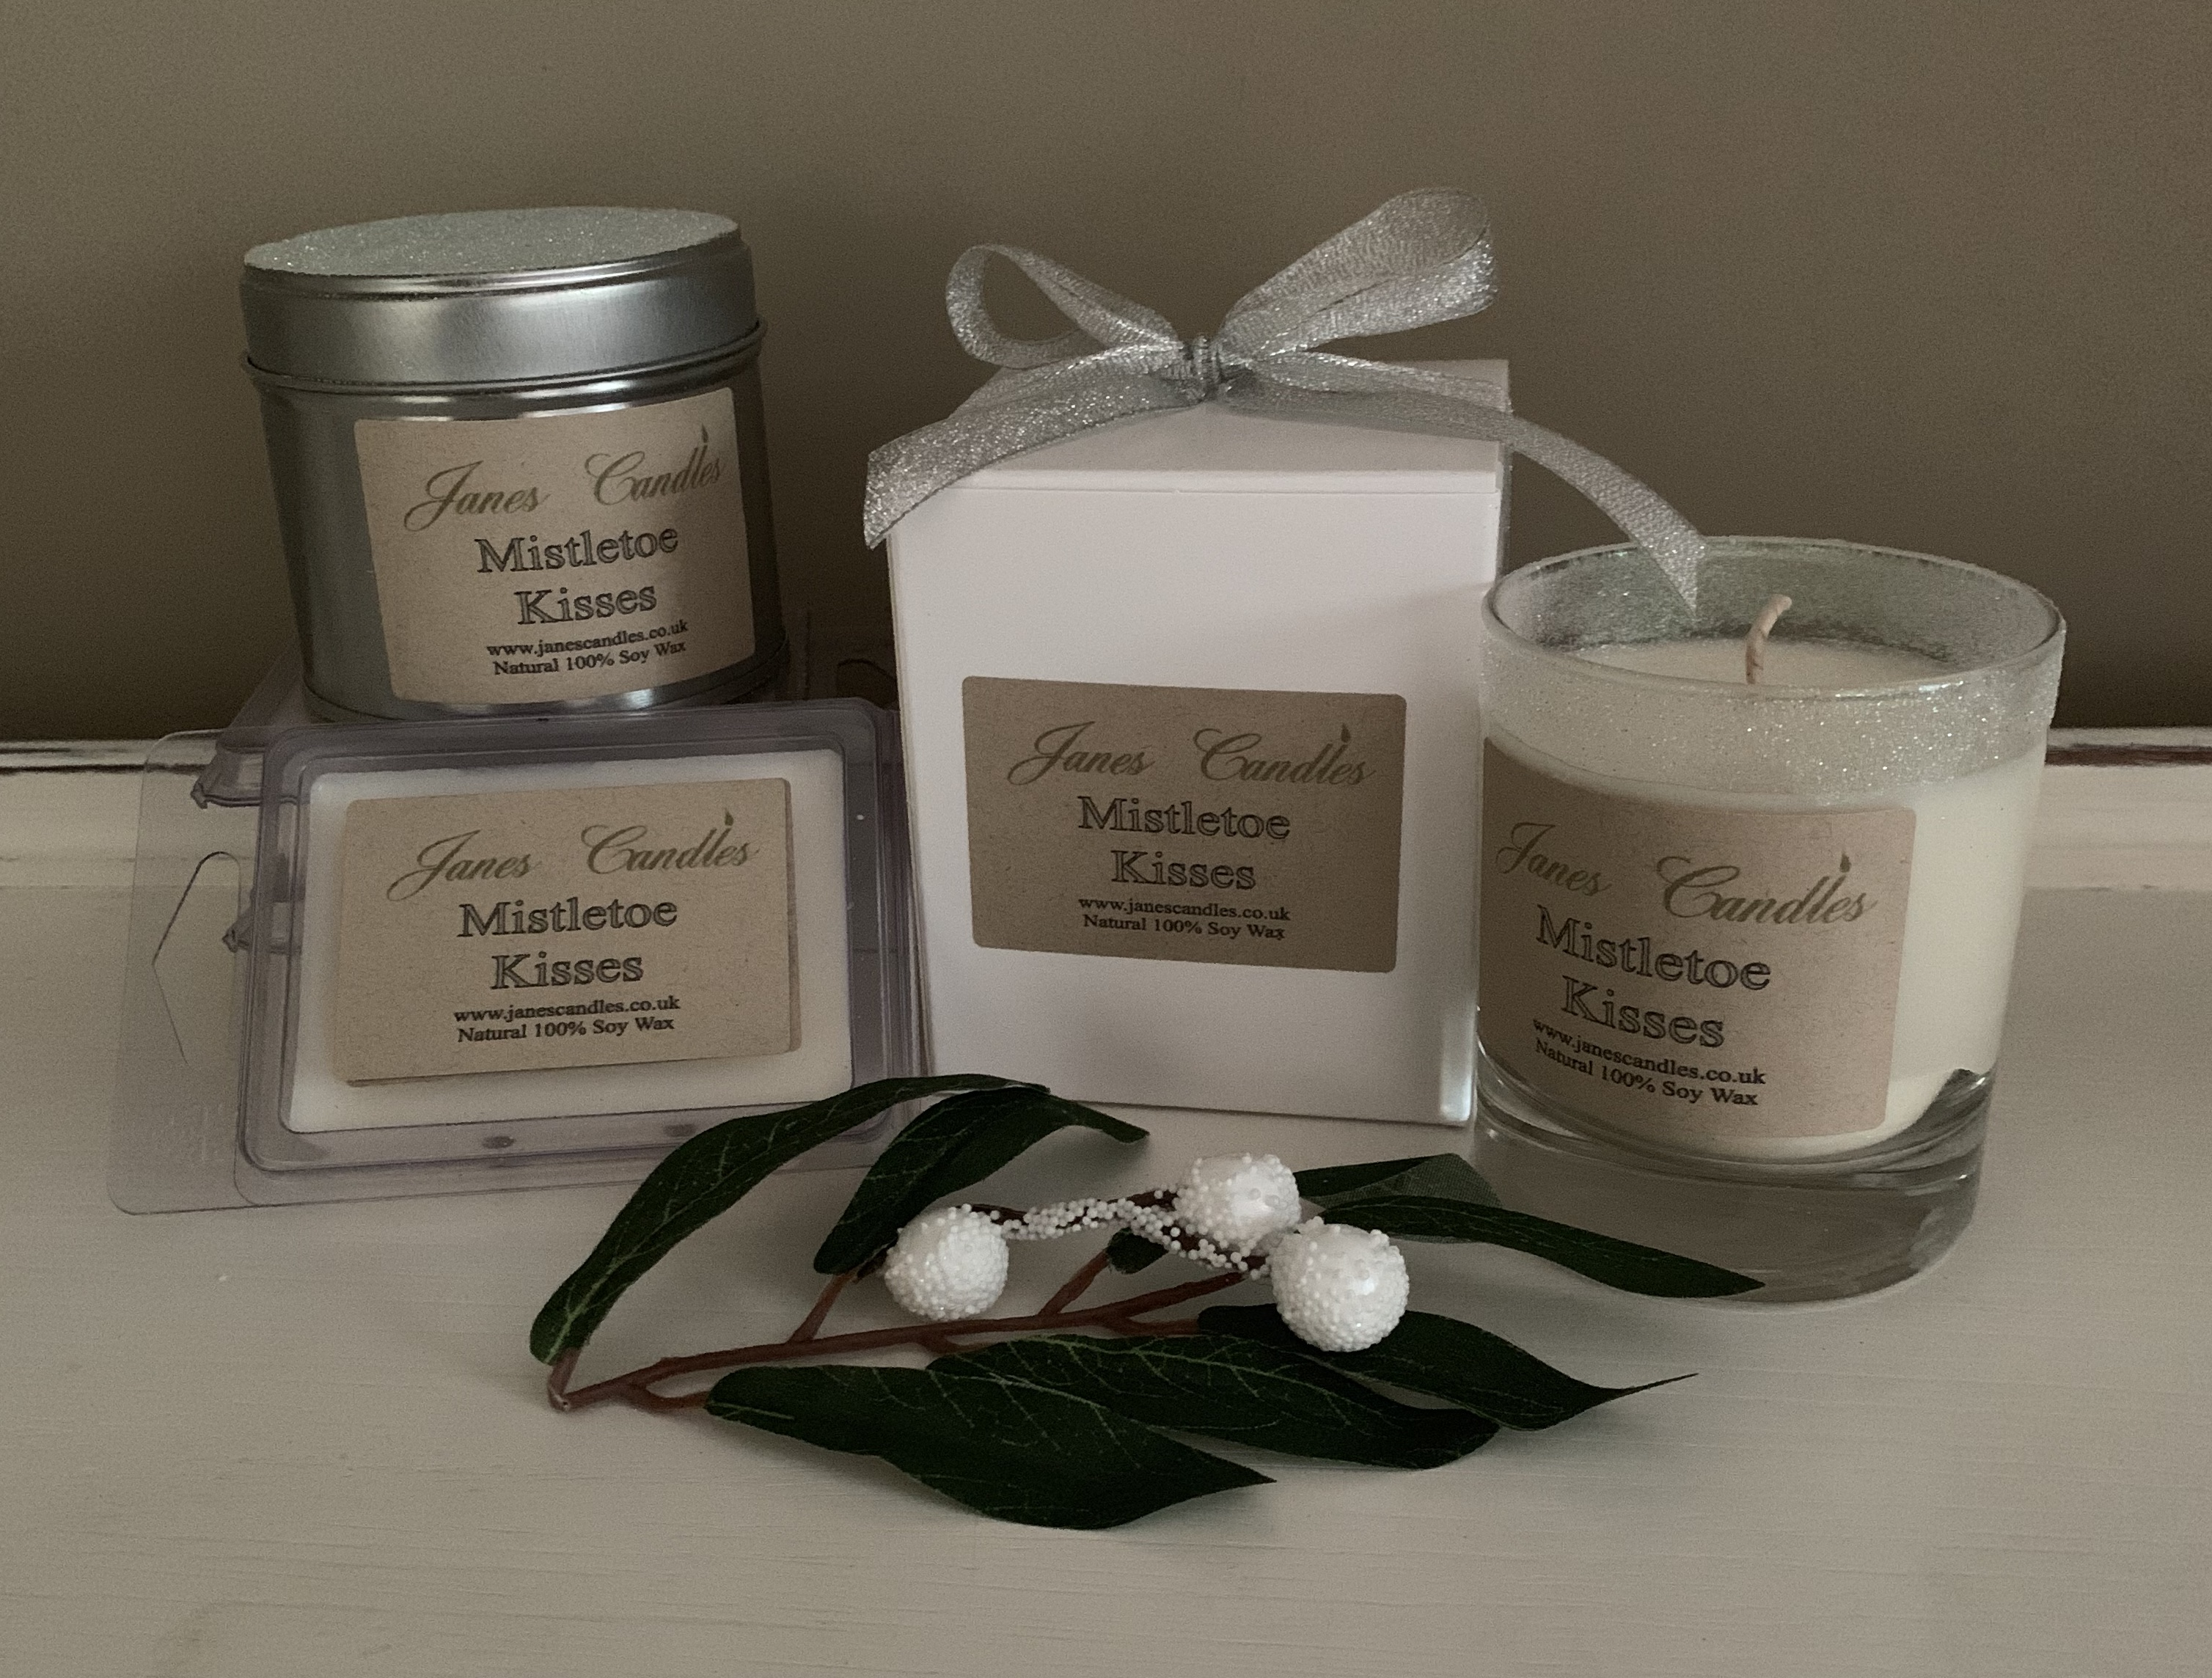 Mistletoe Kisses Candles